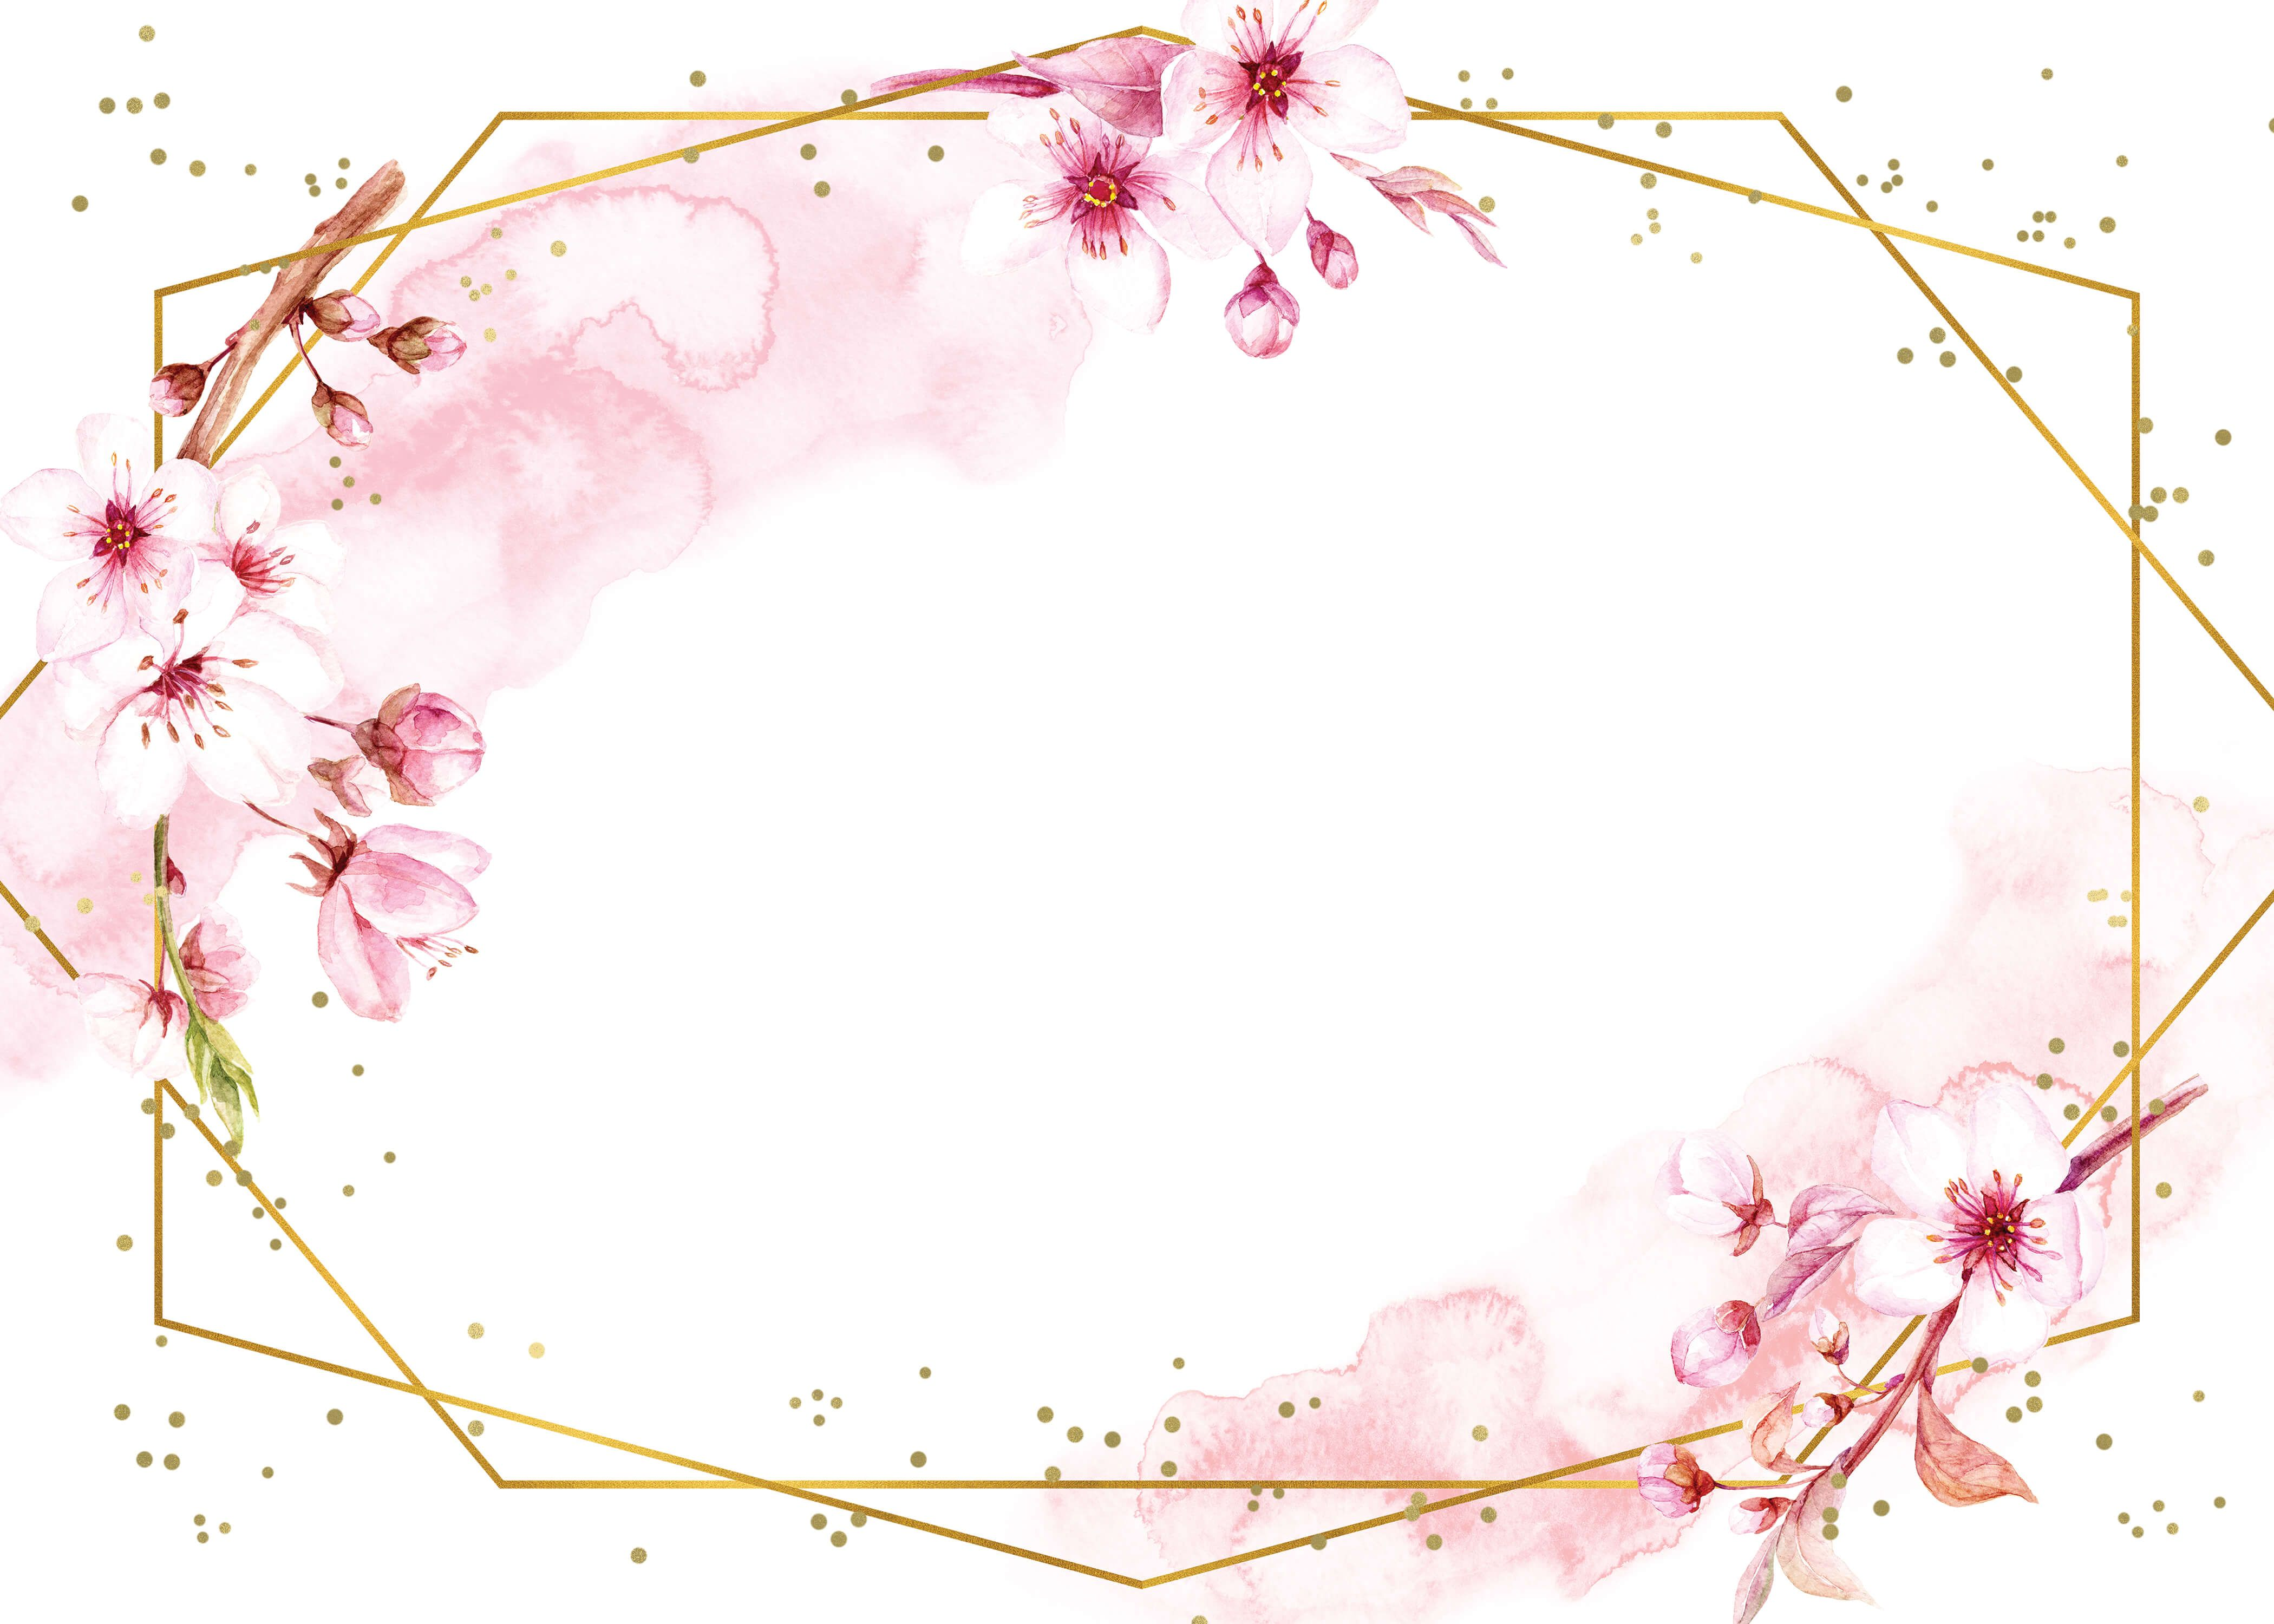 Floral Sakura Rsvp Card Template Free Greetings Island Flower Graphic Design Floral Poster Flower Graphic